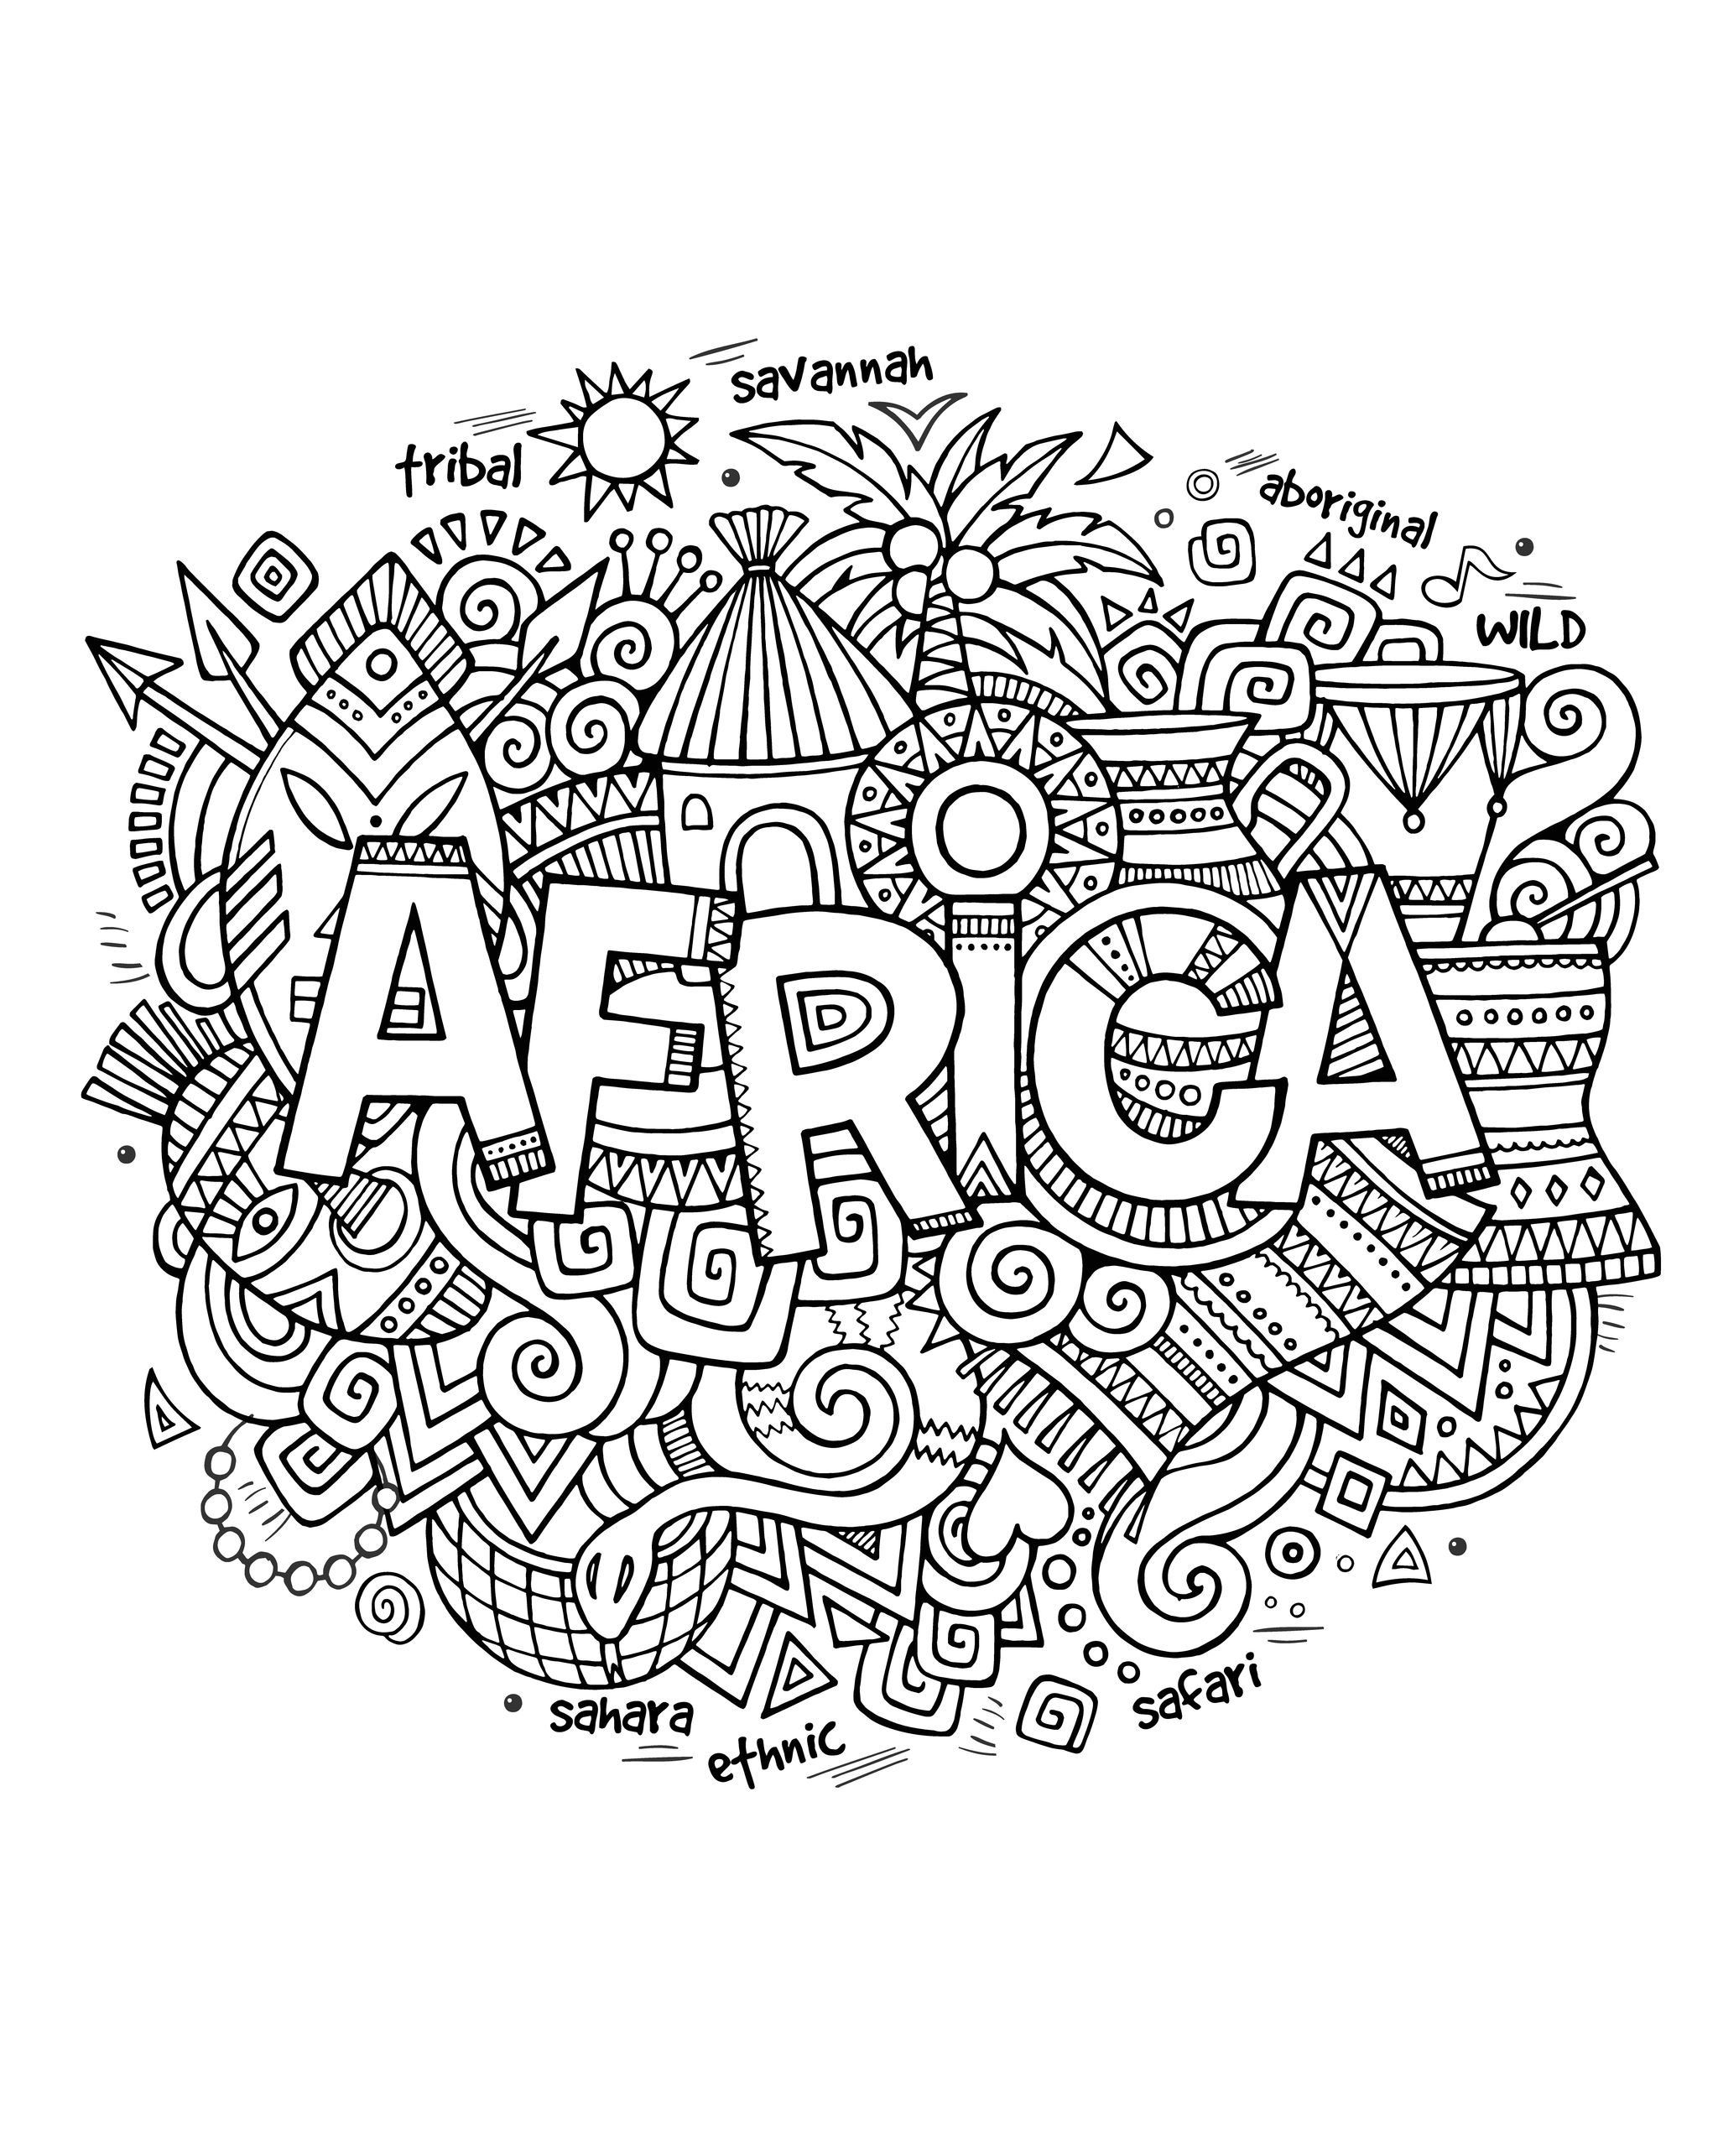 Free printable coloring pages with words - Free Coloring Page Coloring Adult Africa Abstract Symbols Drawing With The